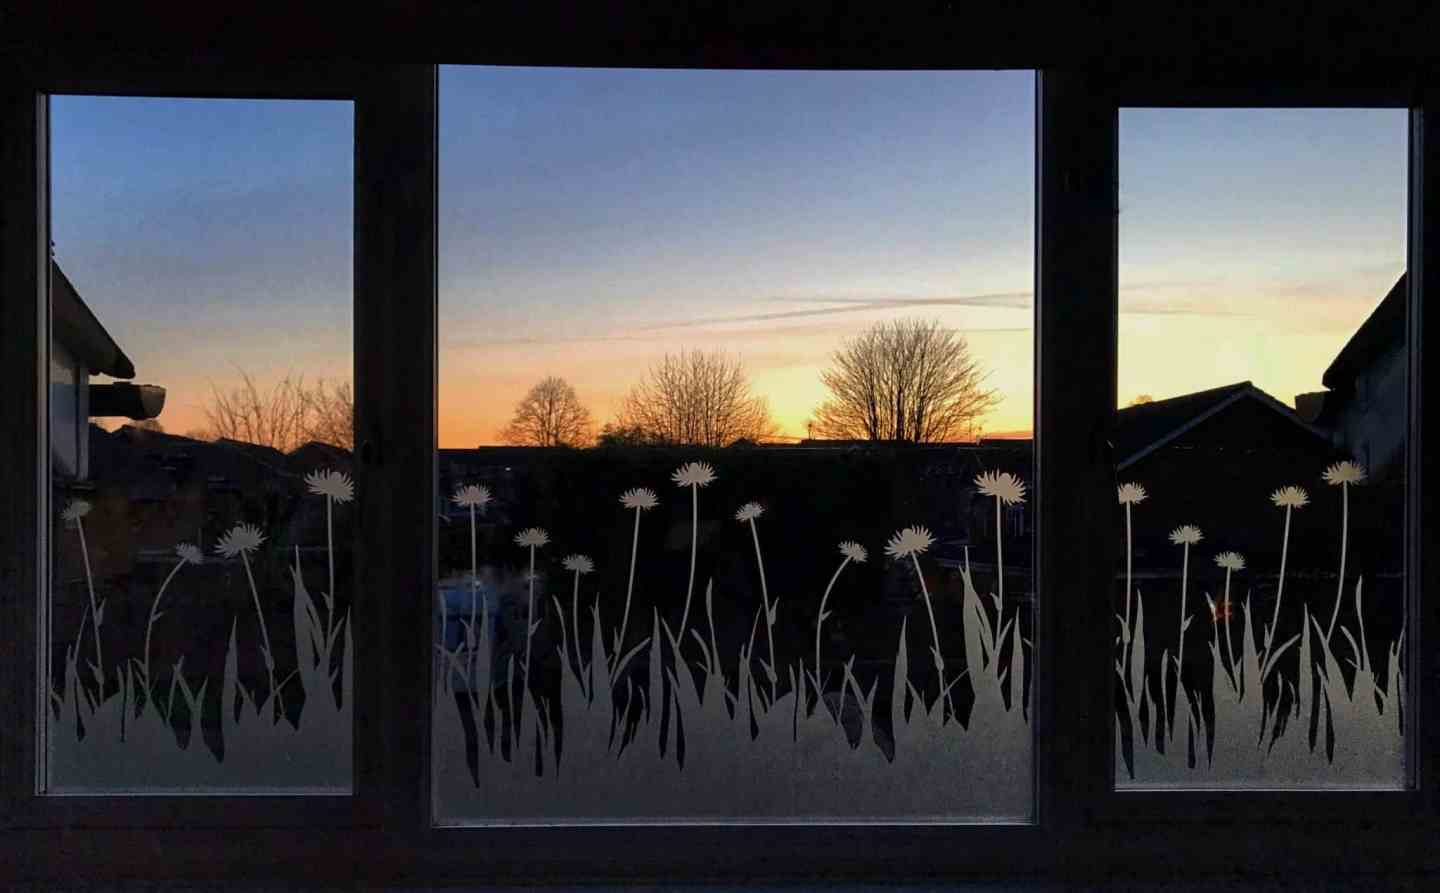 How To Make Over A Window with Window Film - sunsetHow To Make Over A Window with Window Film - sunset